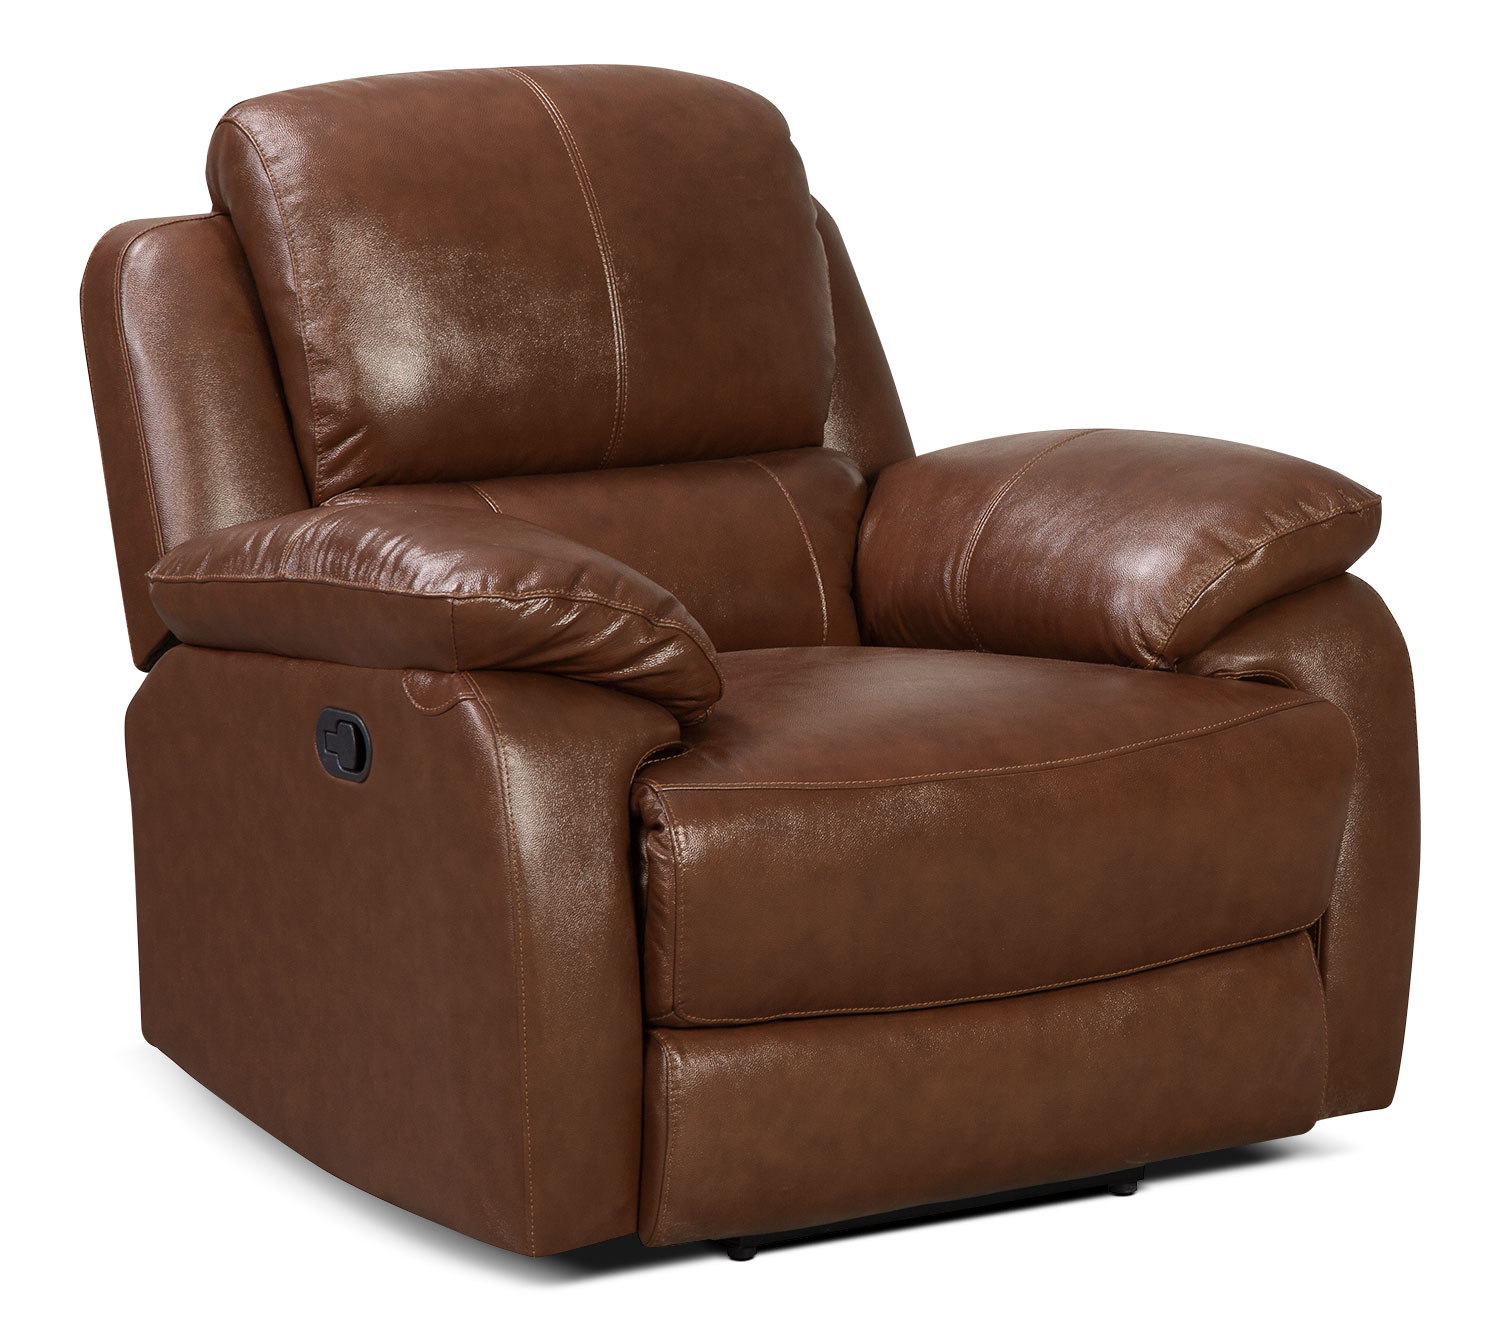 Cairo Genuine Leather Reclining Chair – Brown